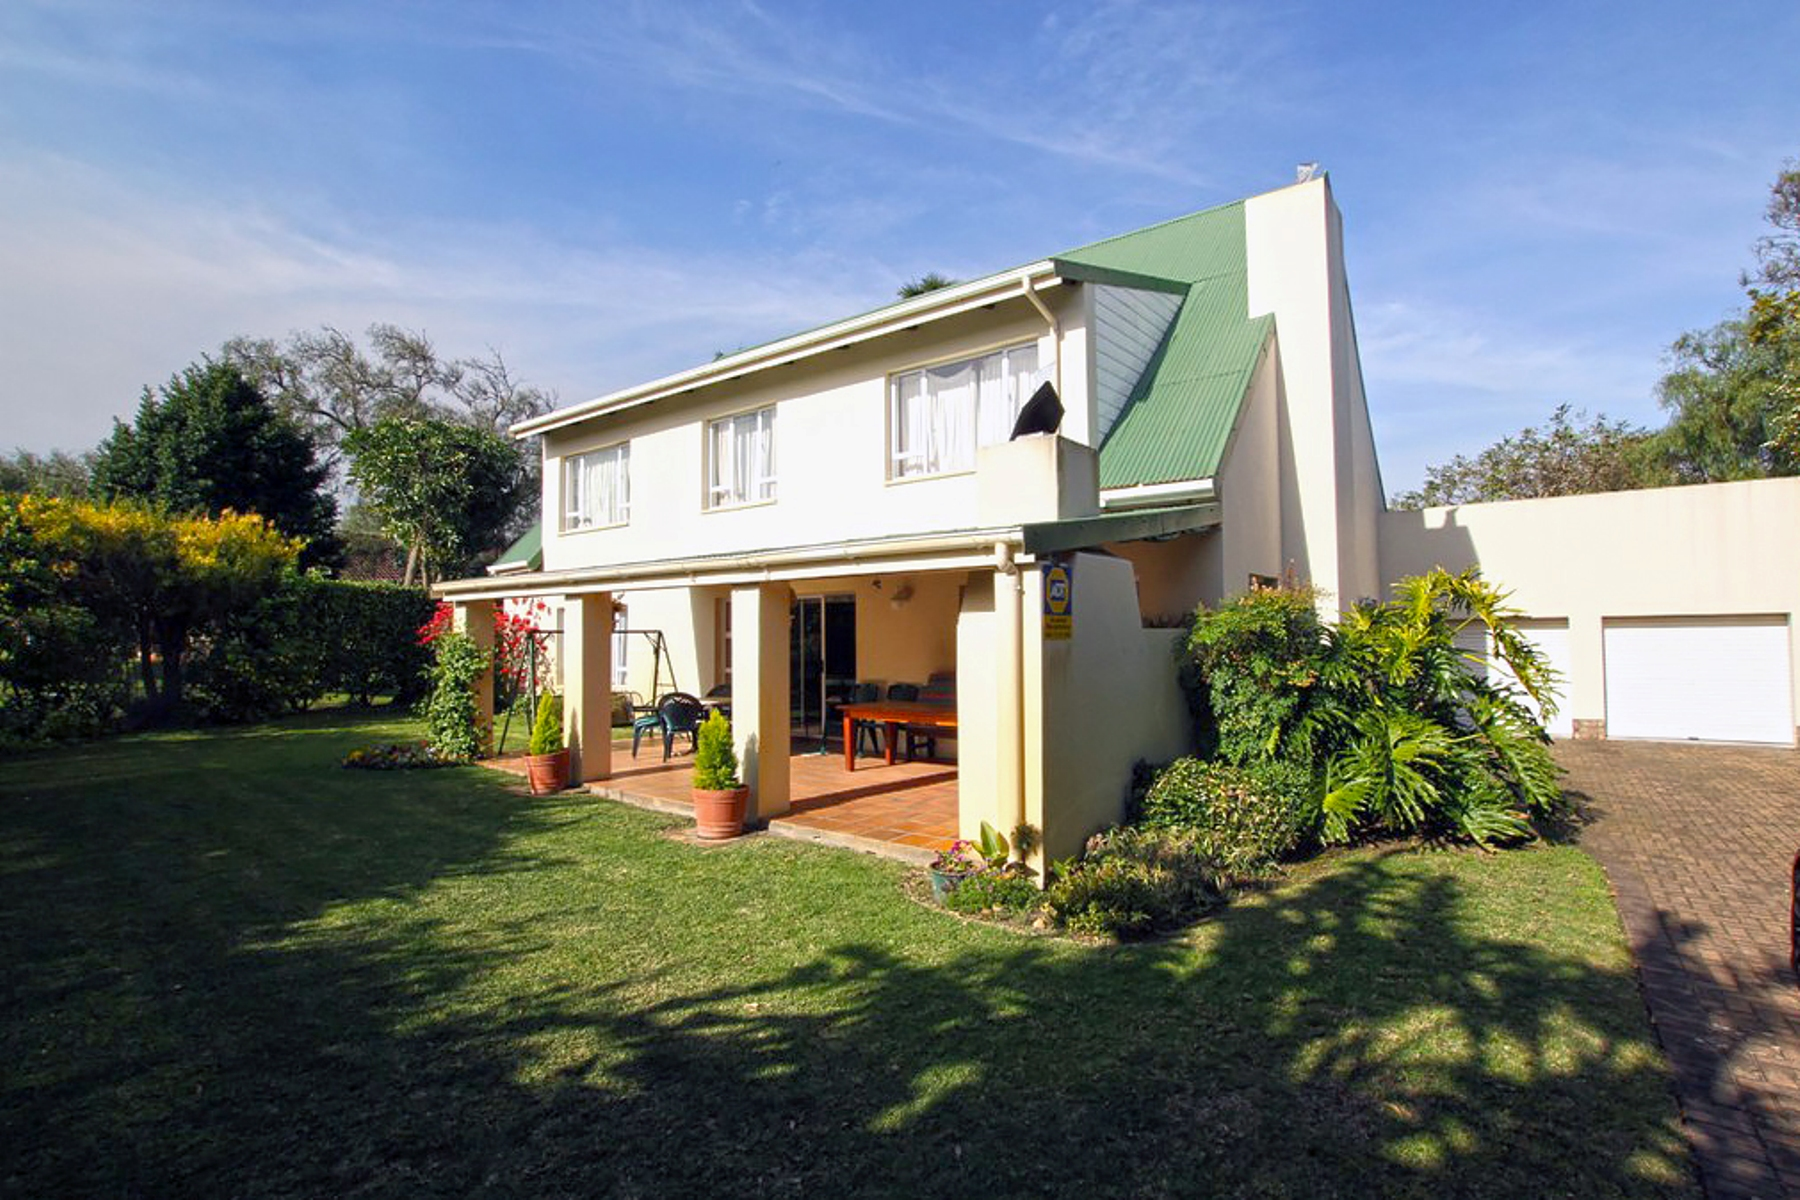 Single Family Home for Sale at Silver Streams Family Home Plettenberg Bay, Western Cape, 6600 South Africa